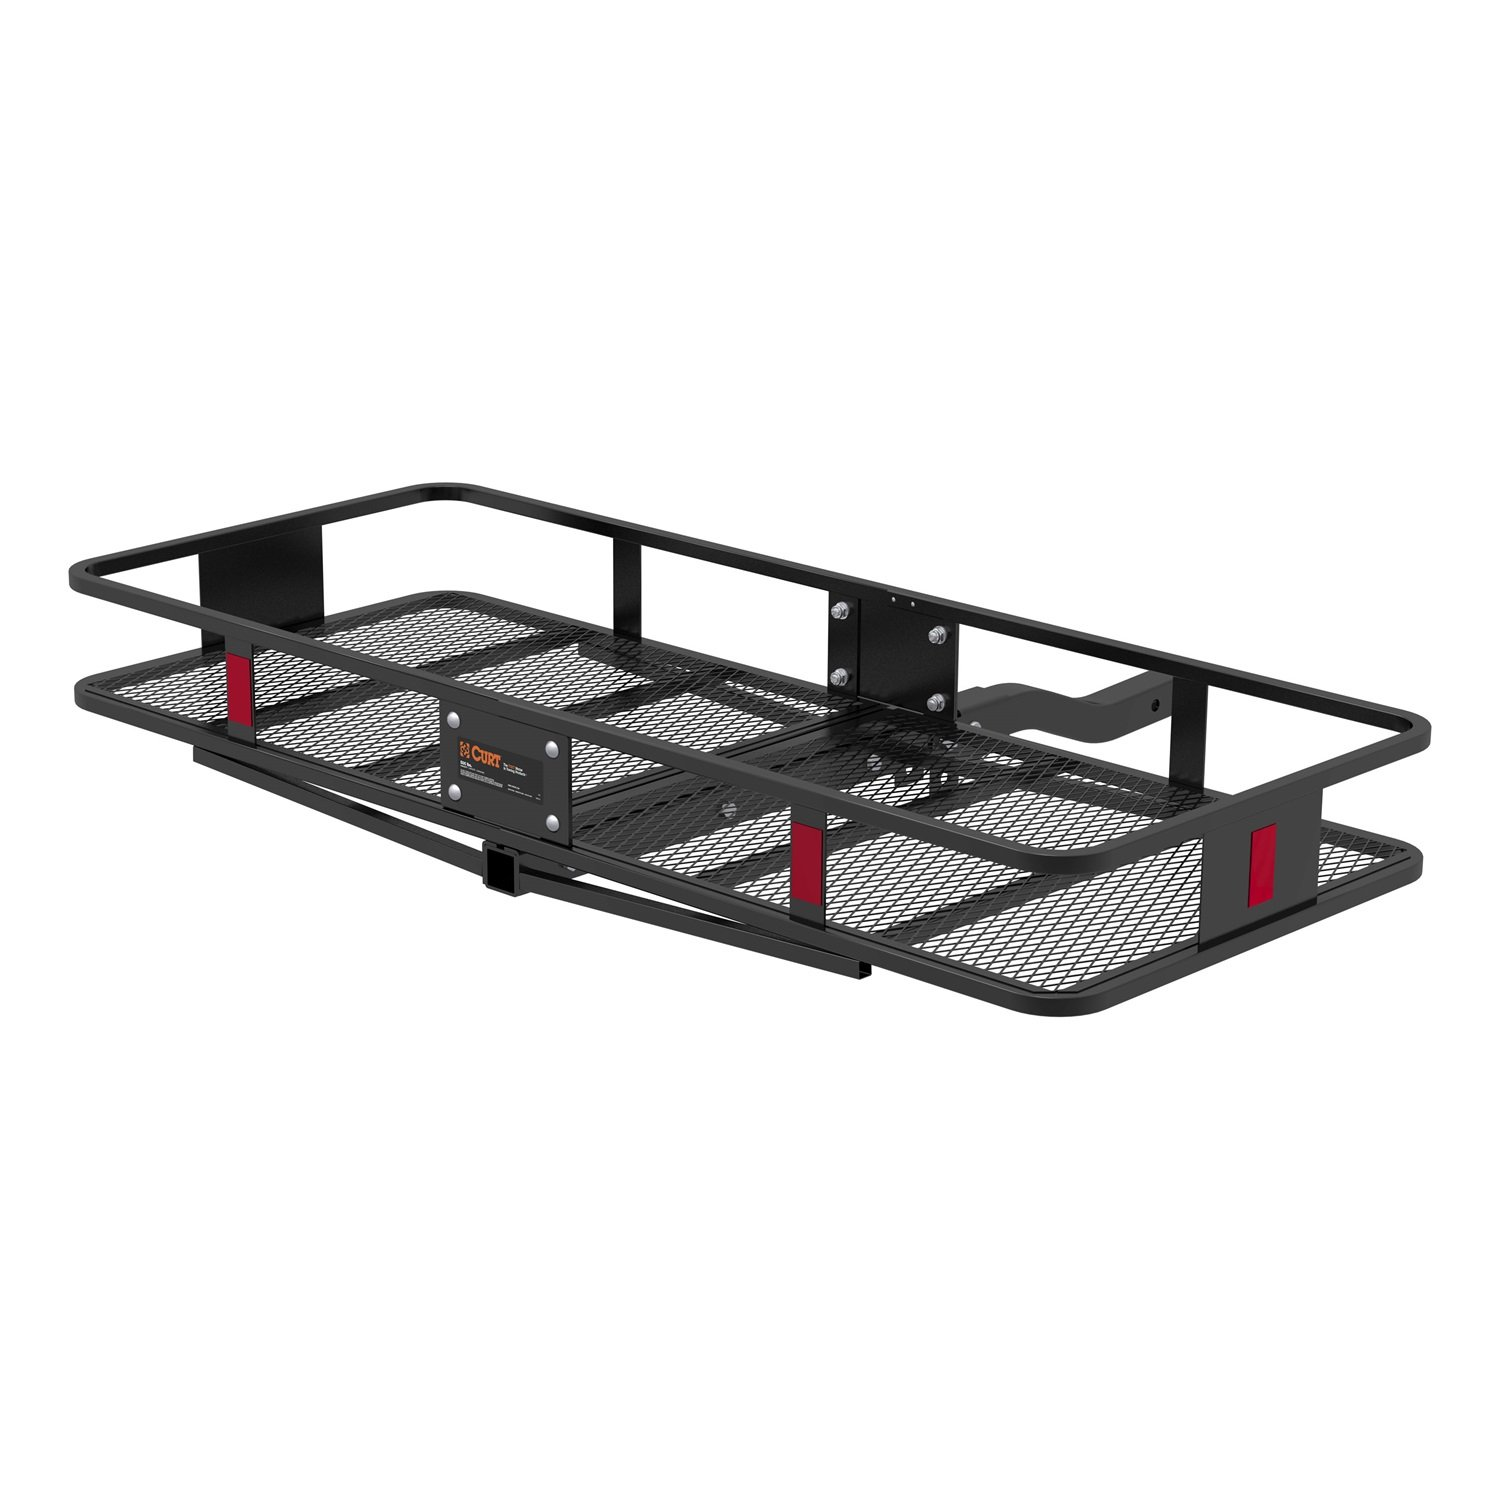 CURT 18153 Black 60'' x 23-1/2'' x 5-1/2'' Basket-Style Hitch Cargo Carrier (Fits 2'' Receiver)